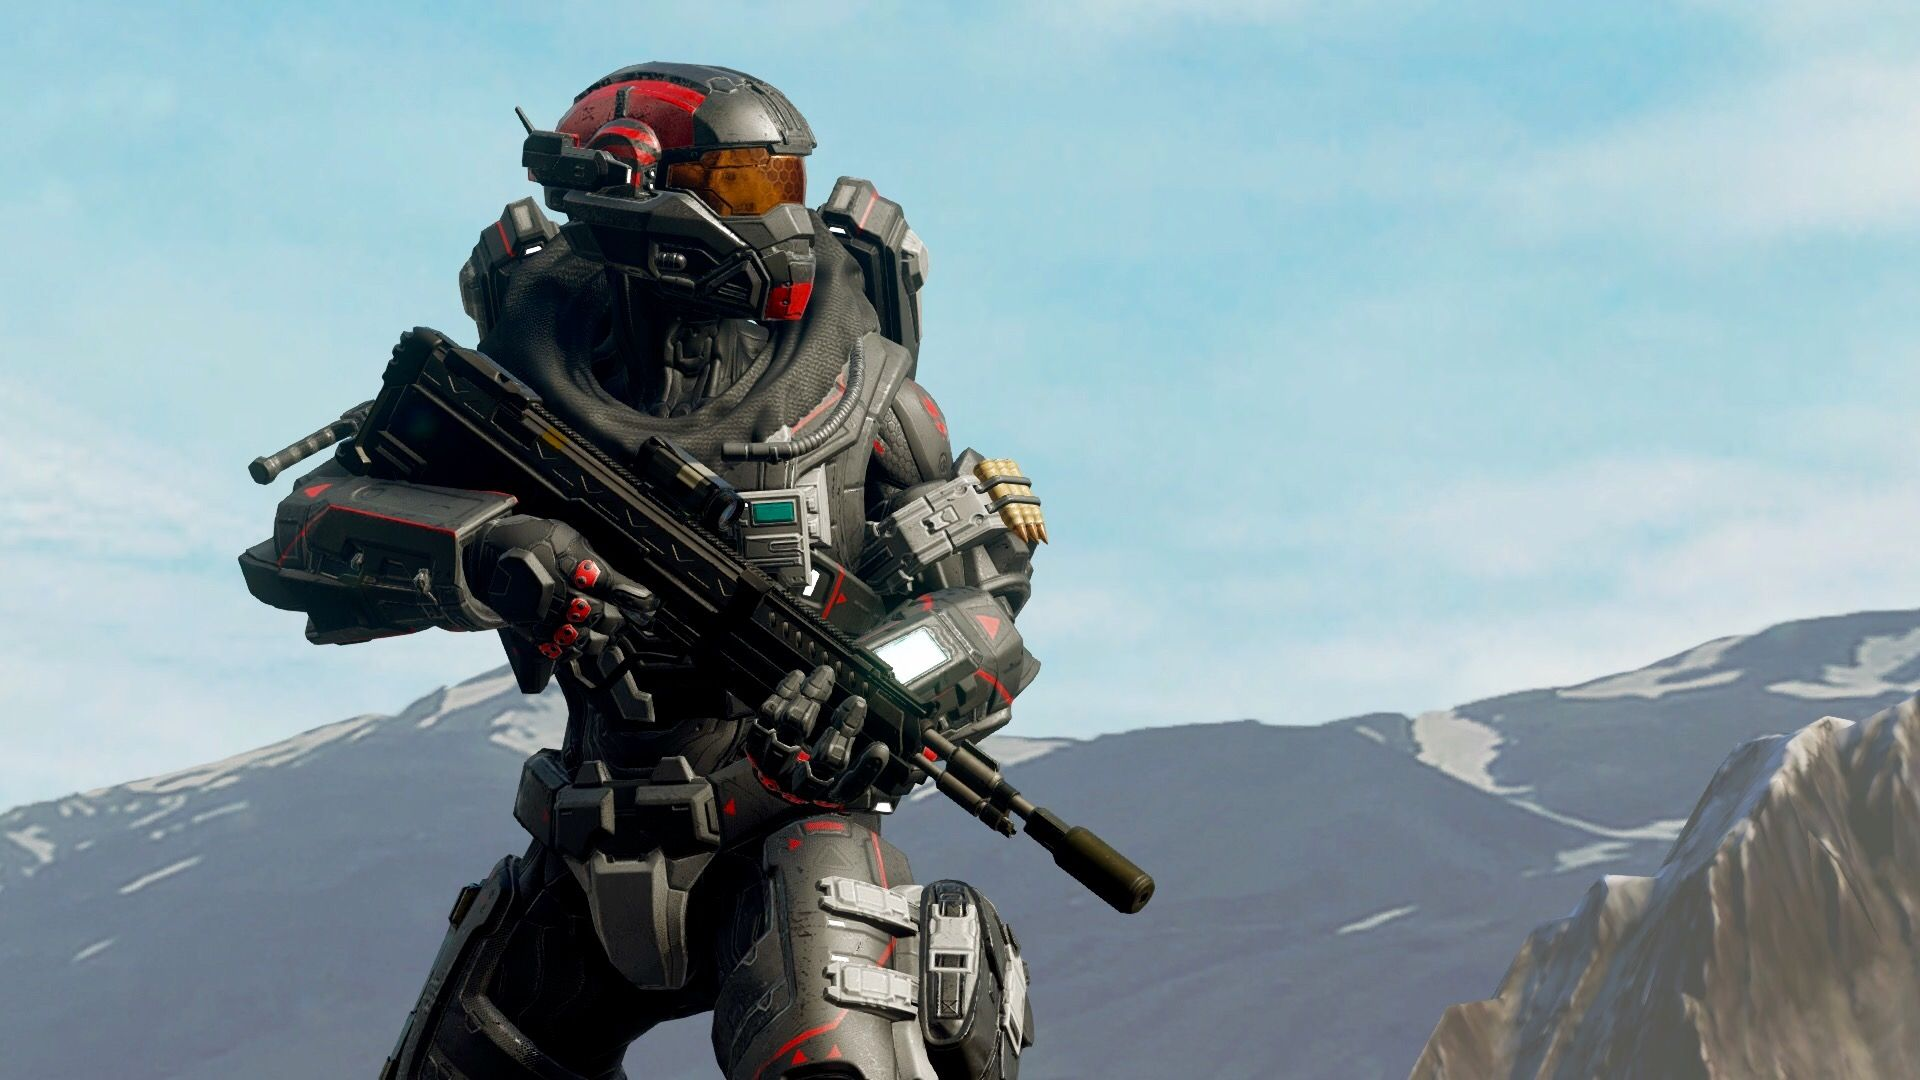 Noble-Inspired Spartan IV | Xbox Games | Halo series, Halo spartan